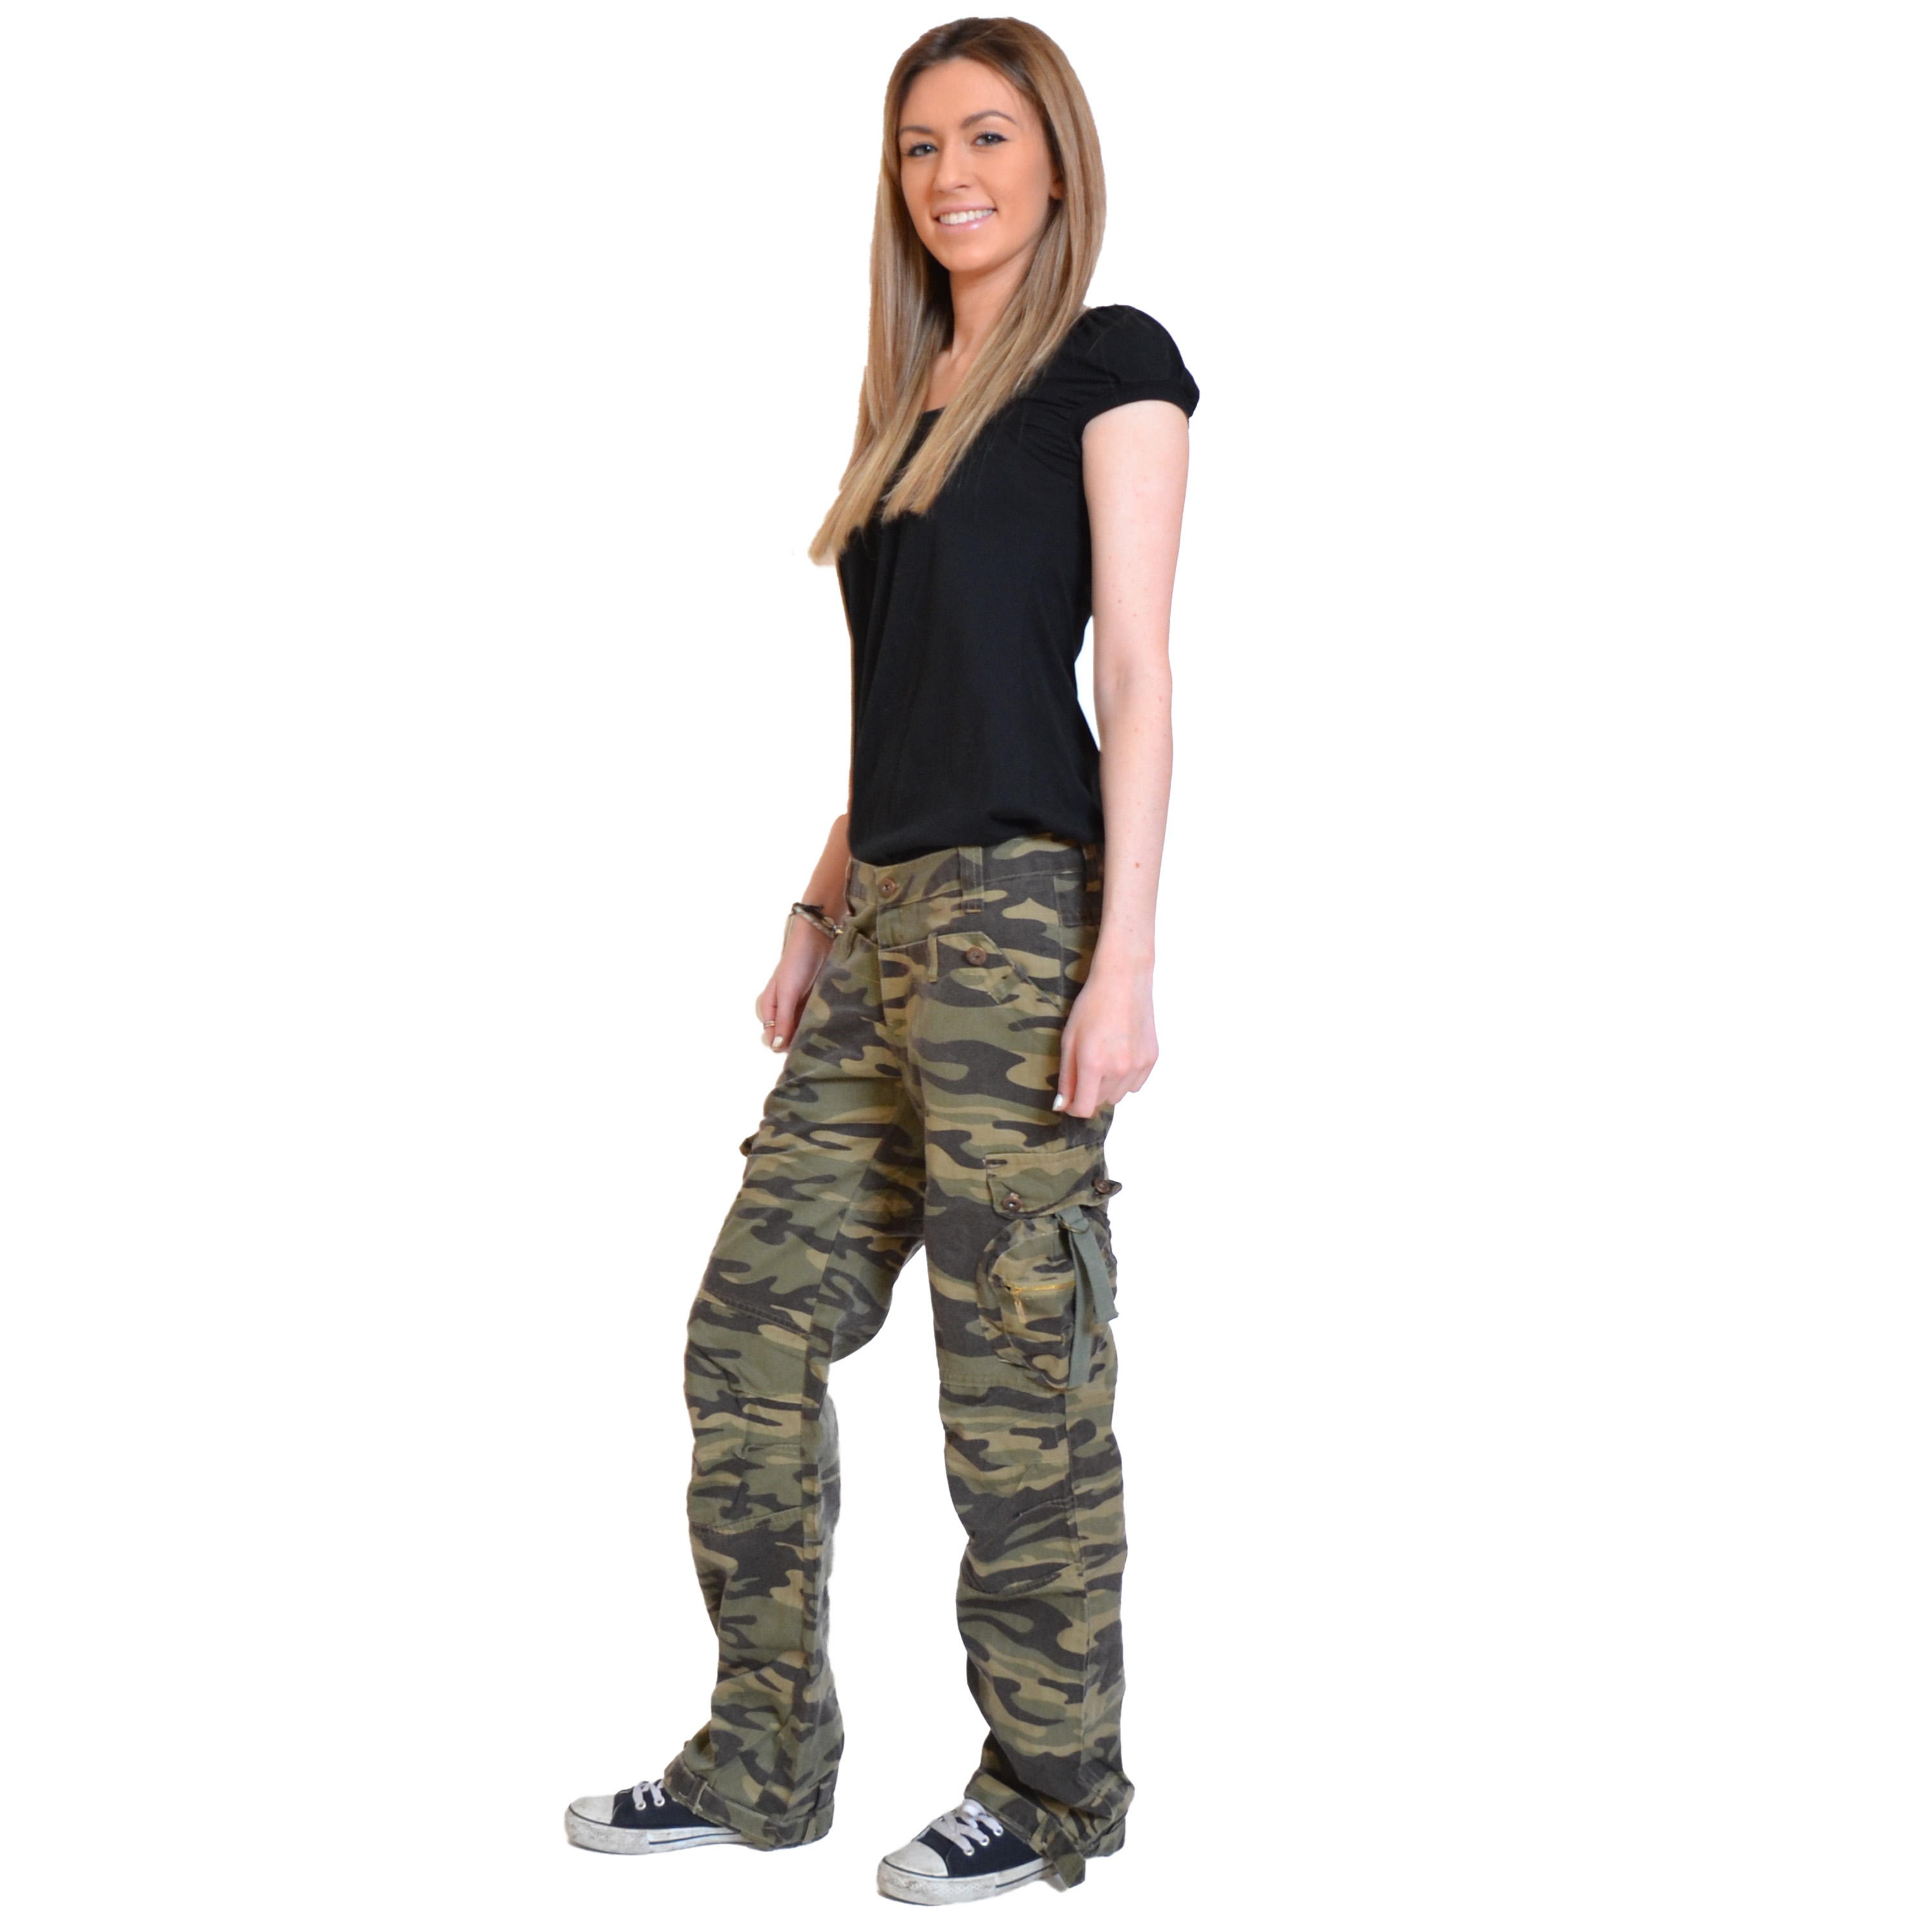 Creative Green Cargo Pants On Pinterest  Army Cargo Pants Army Green Pants